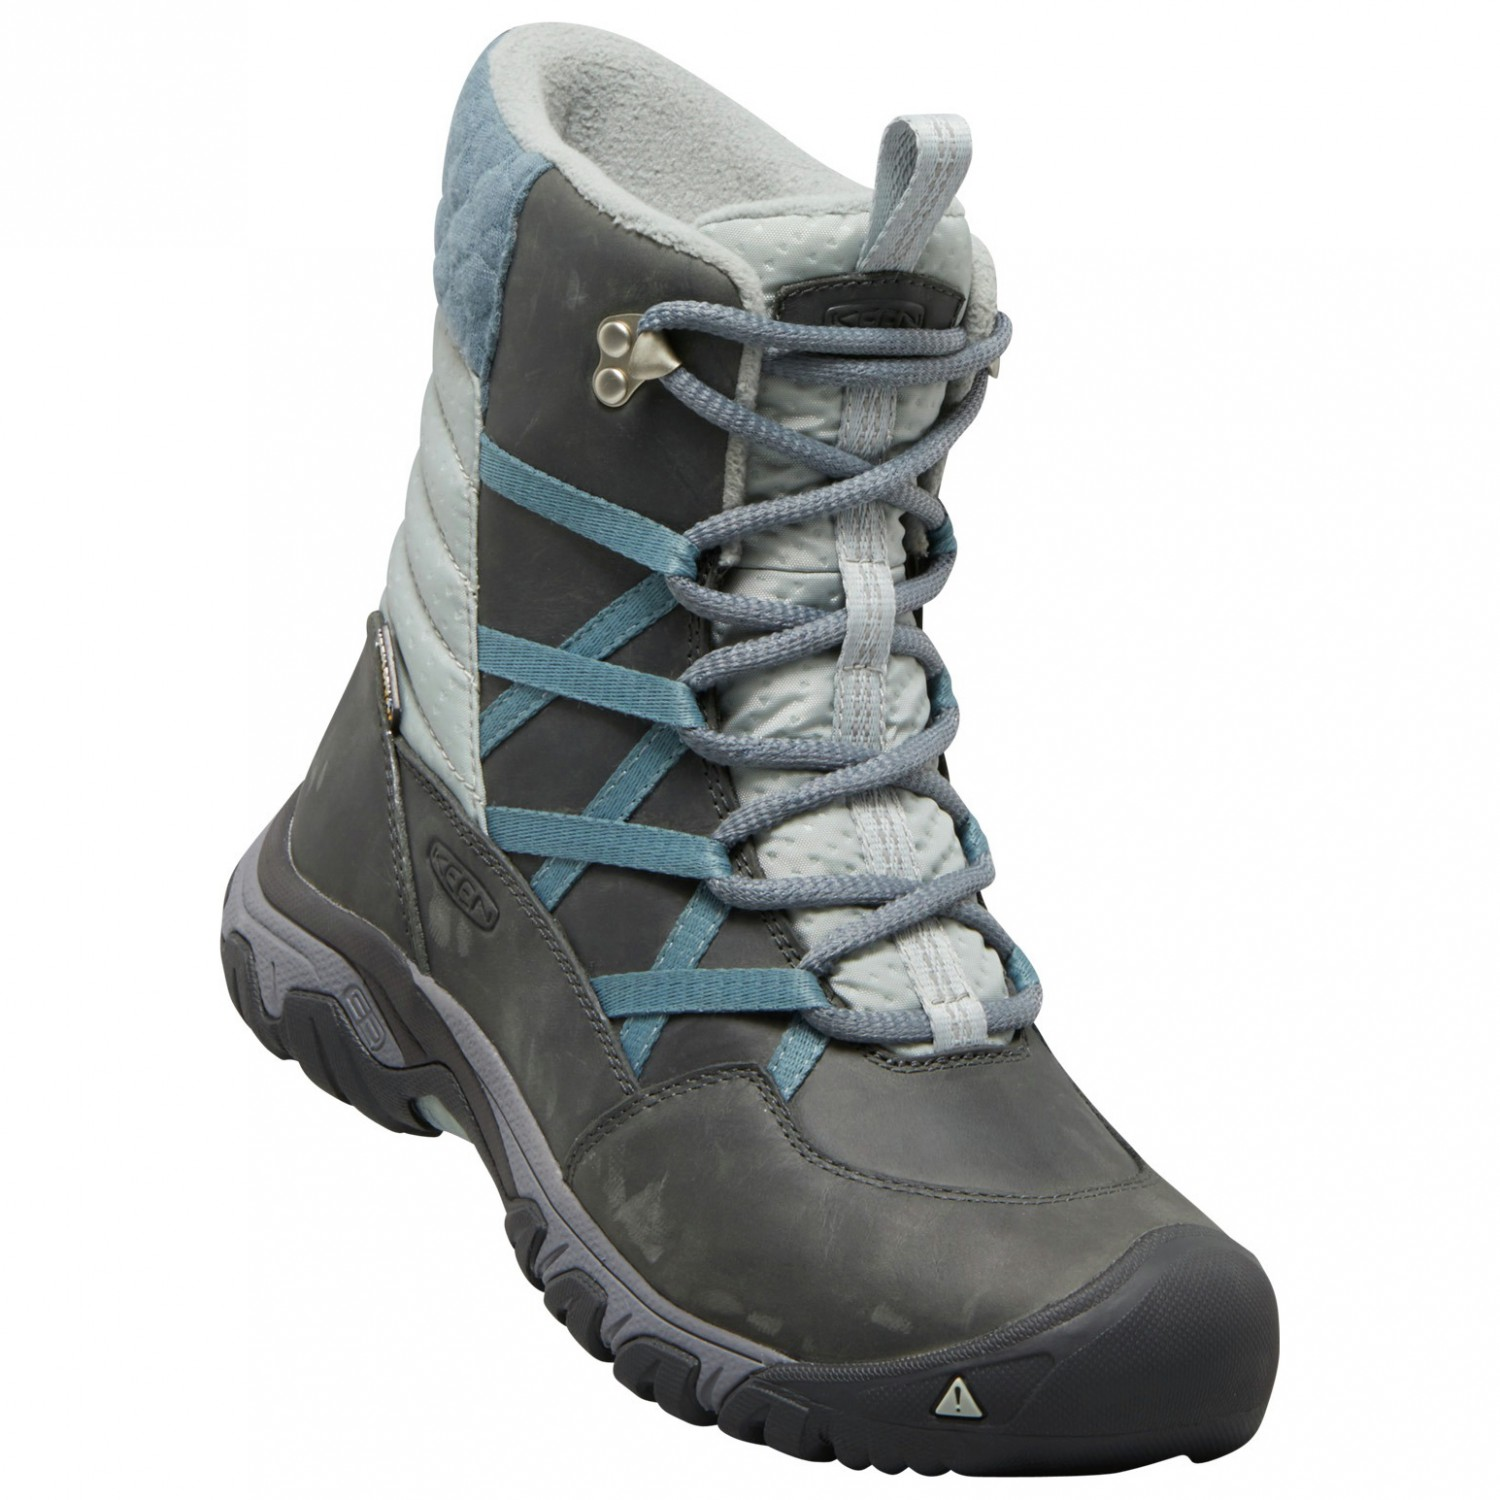 d58c7a1dfd2 Keen - Women's Hoodoo III Lace Up - Winter boots - Turbulence / Wrought  Iron | 6 (US)